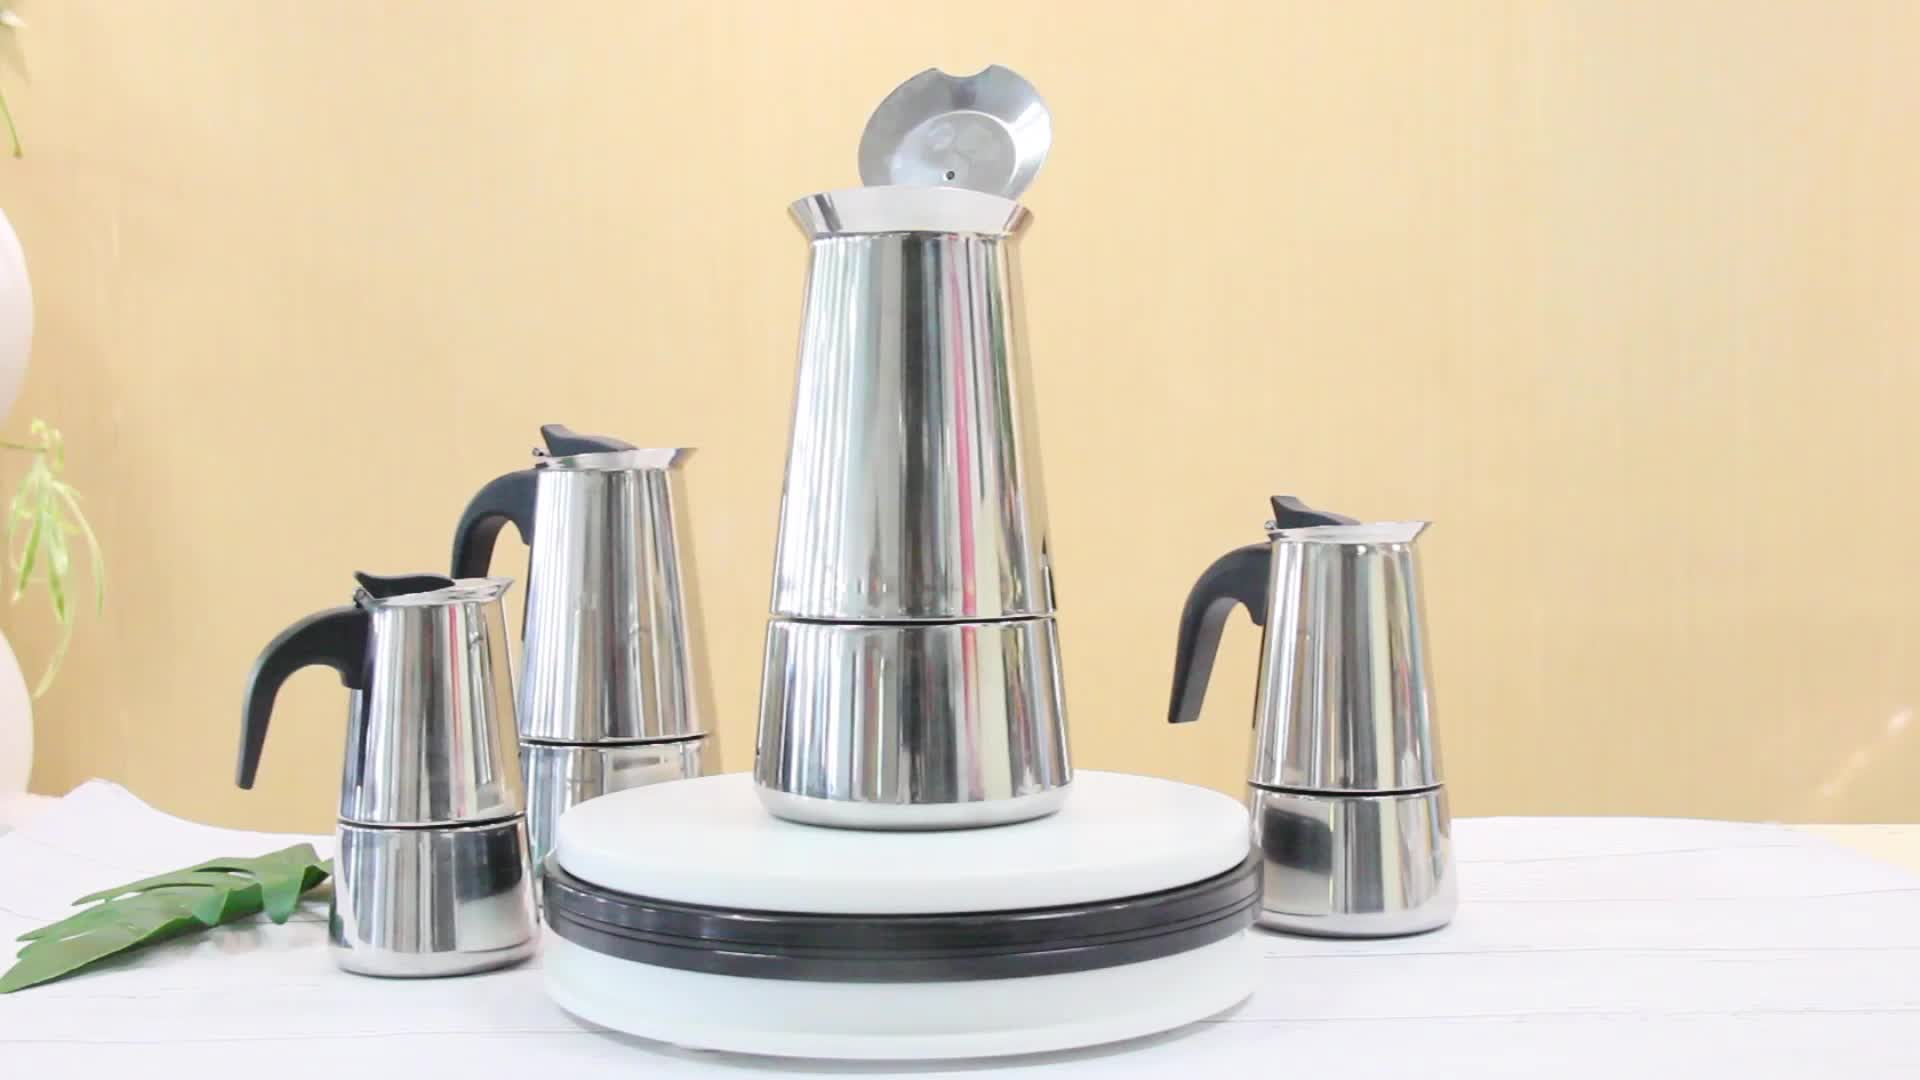 Promotional 6 Cup Moka Espresso Machine Stainless Steel Portable Coffee Maker with Extra Coffee Filter, Clip Spoon, Carrying Bag